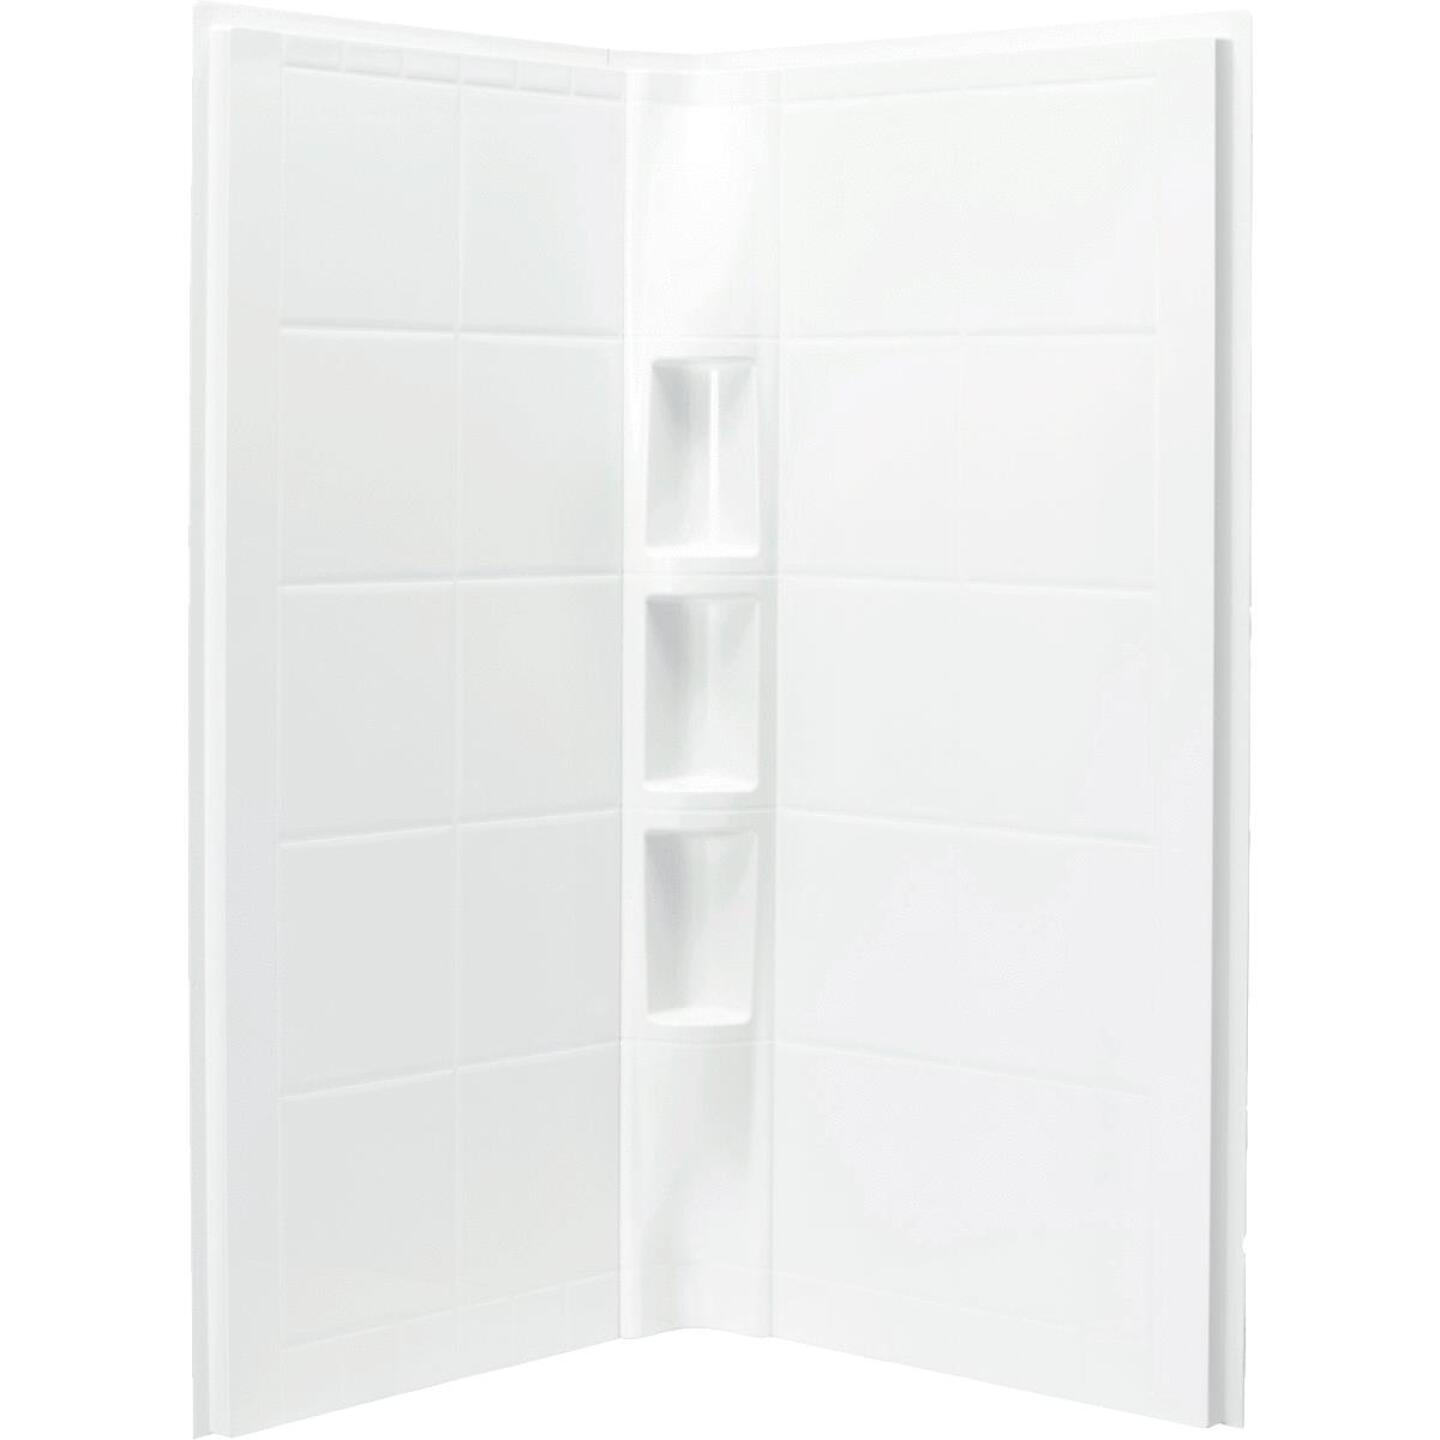 Sterling 2-Piece 39 In. W. x 79-1/8 In. H. x 39 In. D. White Shower Wall Set Image 2